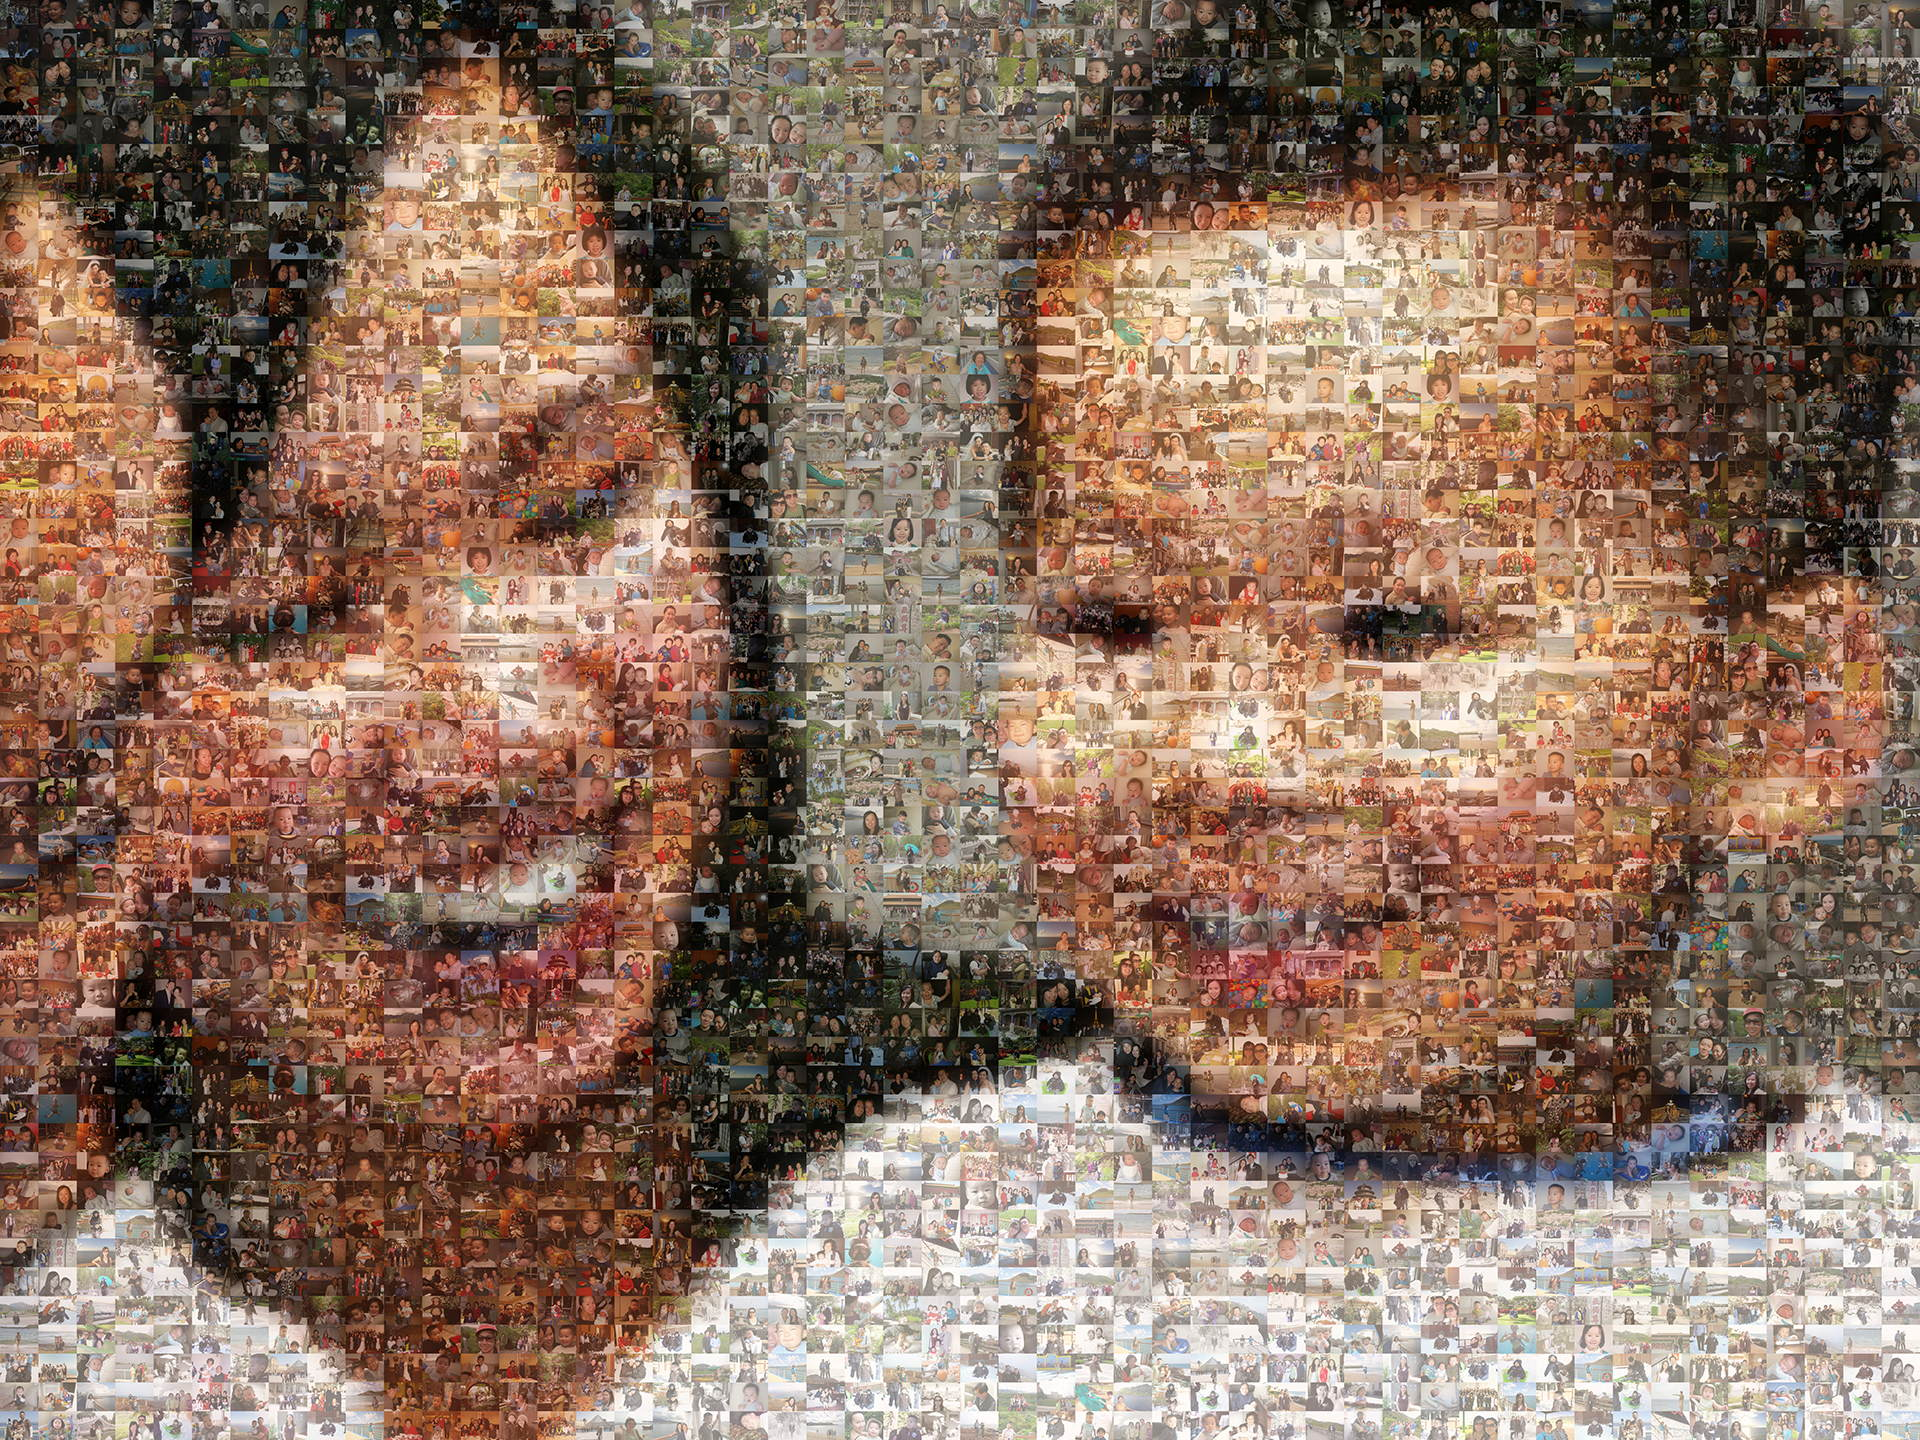 photo mosaic created using 690 family photos